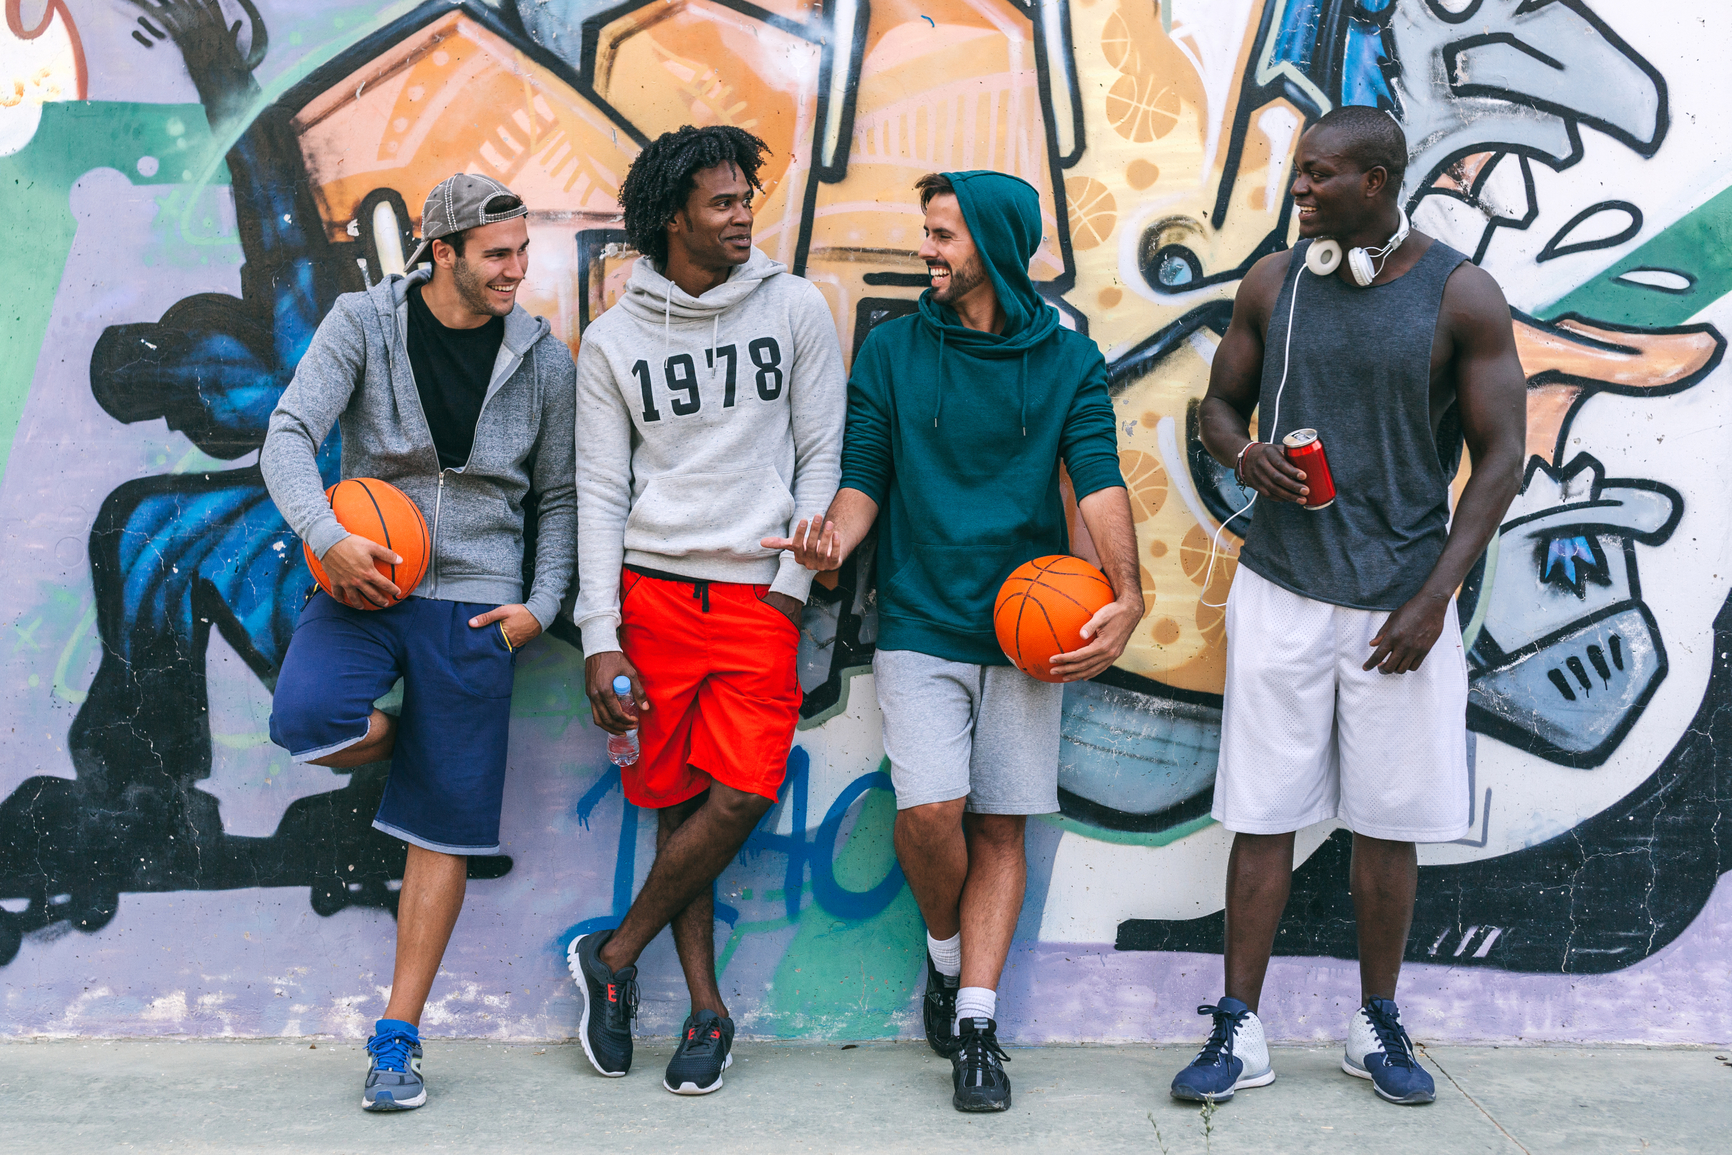 Friends Rests Over a Graffiti Painted Wall After a Street Basketball Game